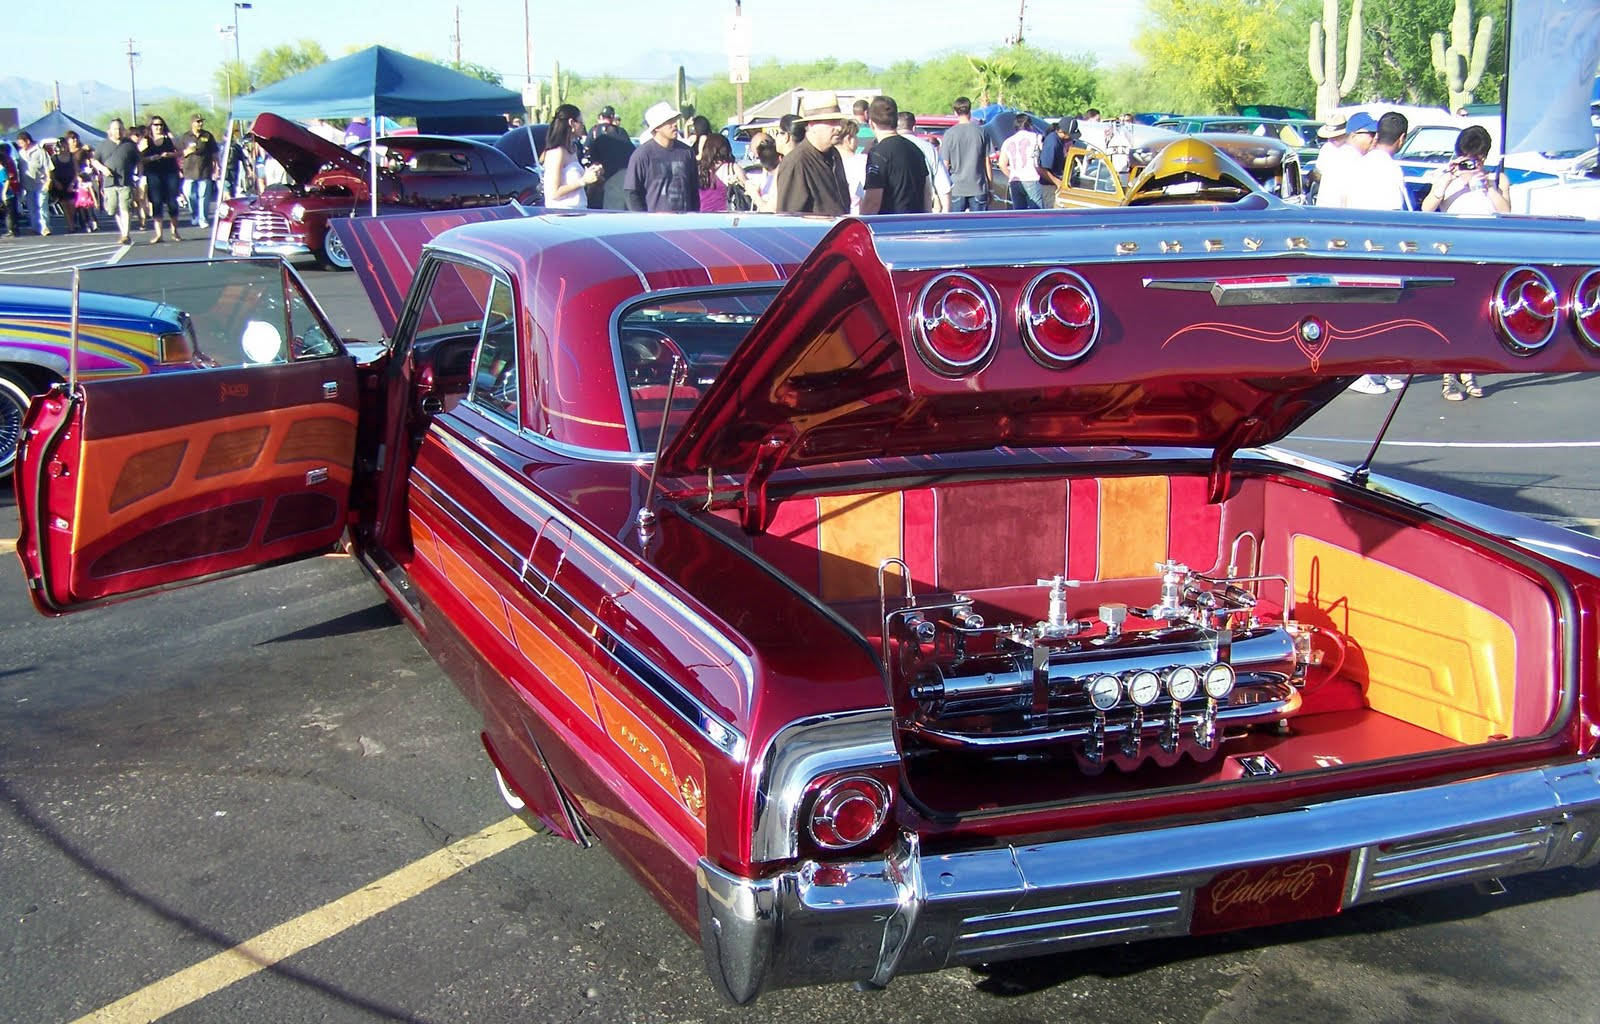 Up To Speed Ft McDowell Low Rider Car Show - Cool cars hydraulic